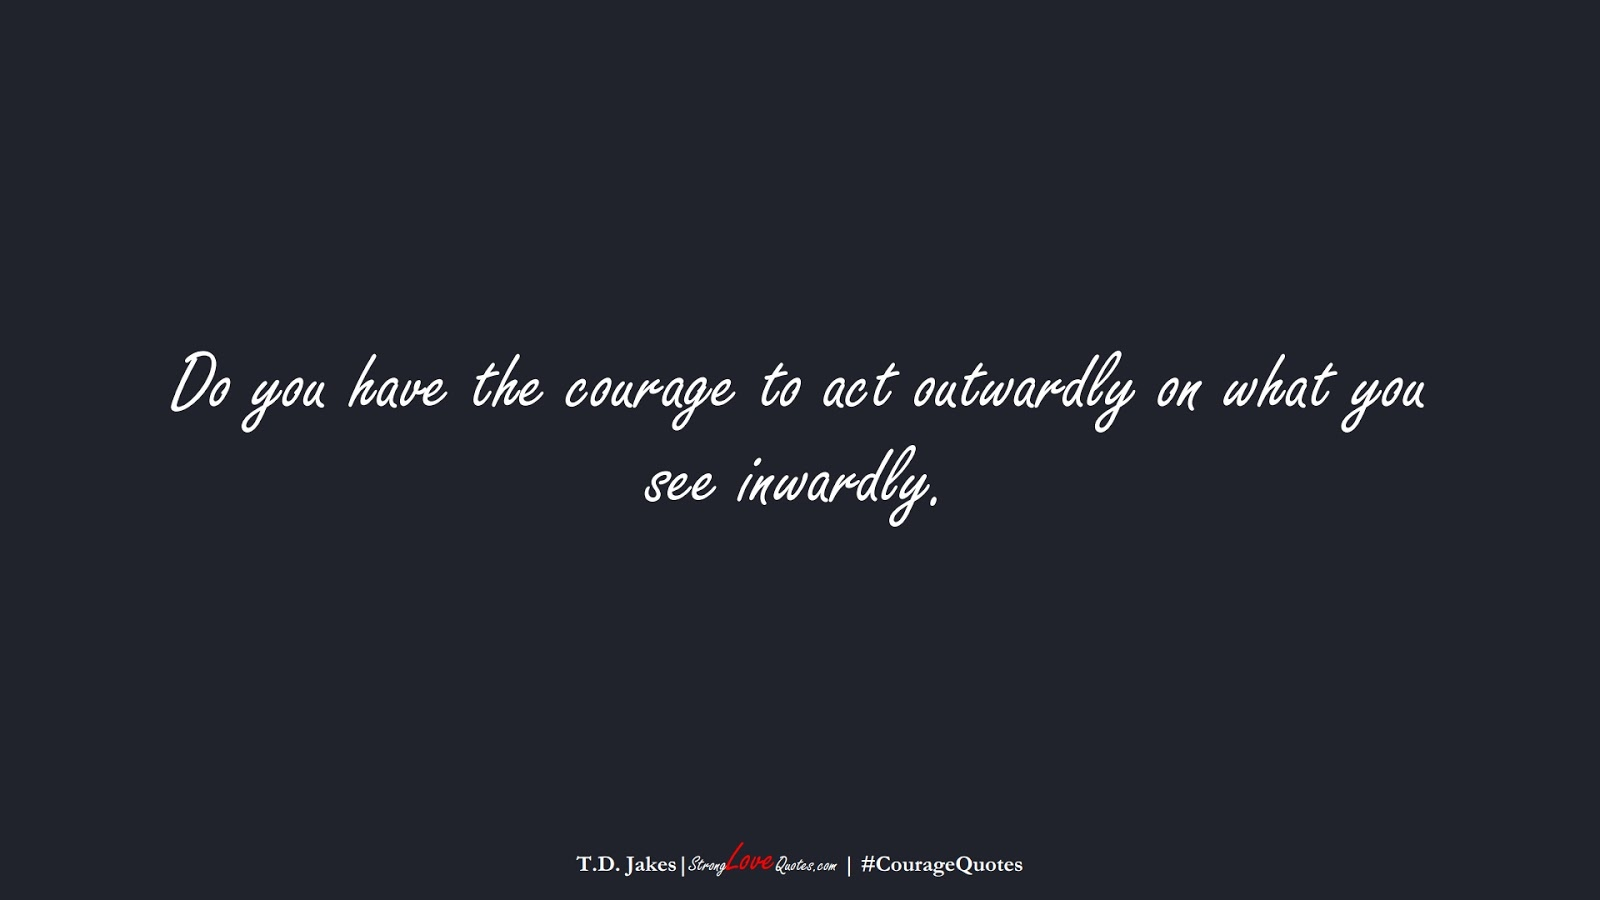 Do you have the courage to act outwardly on what you see inwardly. (T.D. Jakes);  #CourageQuotes